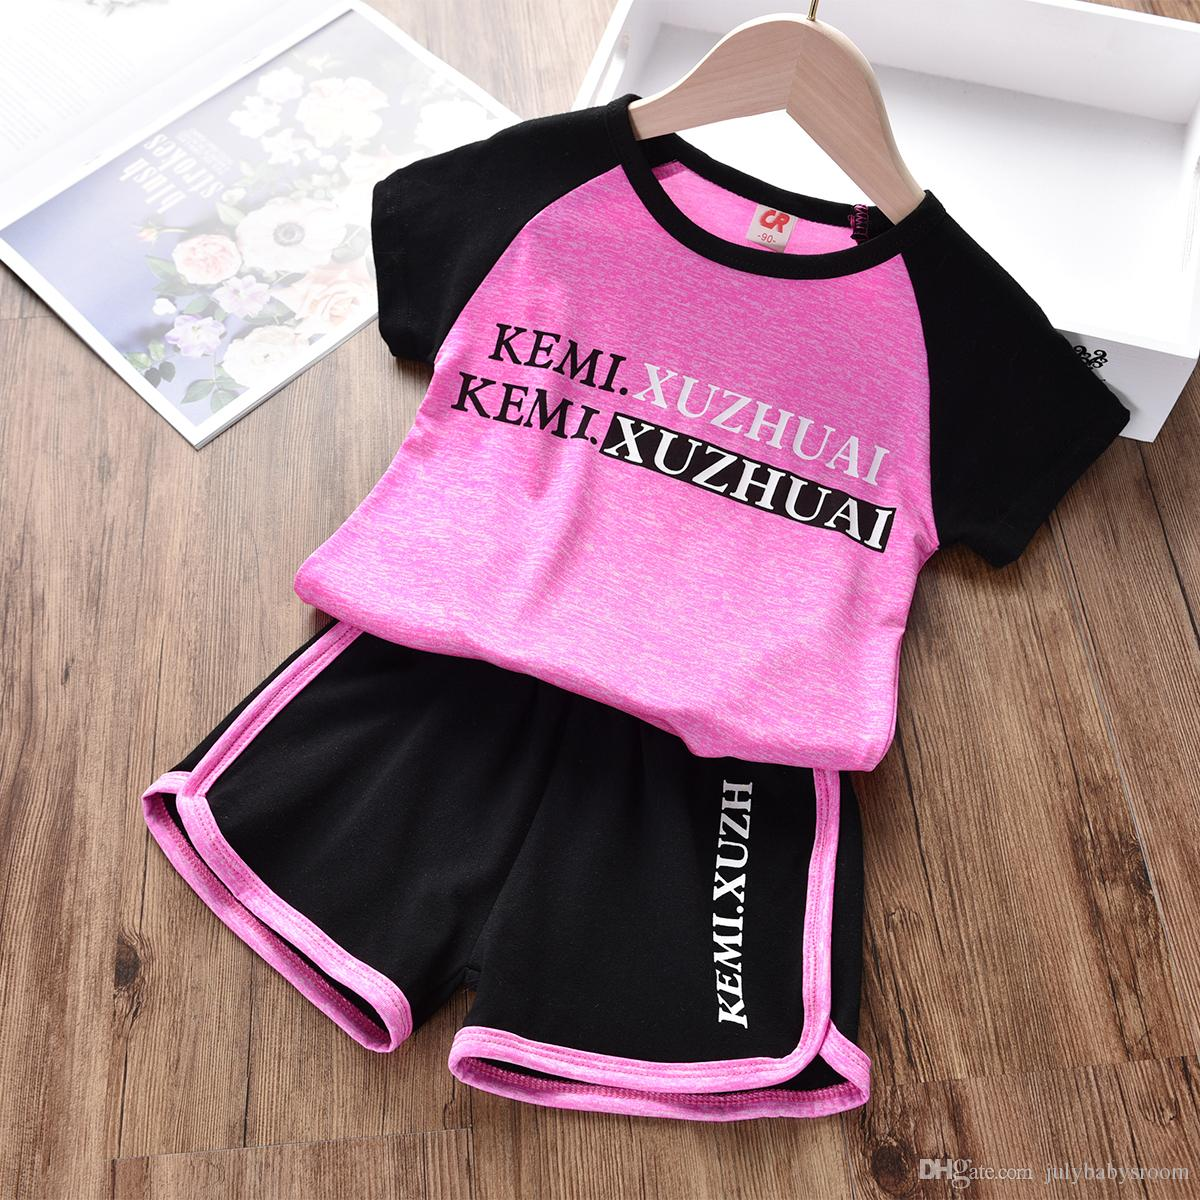 Kids Baby Sports Suits 2pcs Letters Printed Short Sleeve Cotton T-shirt+Shorts Pants Toddler Boys Girls Clothing Set